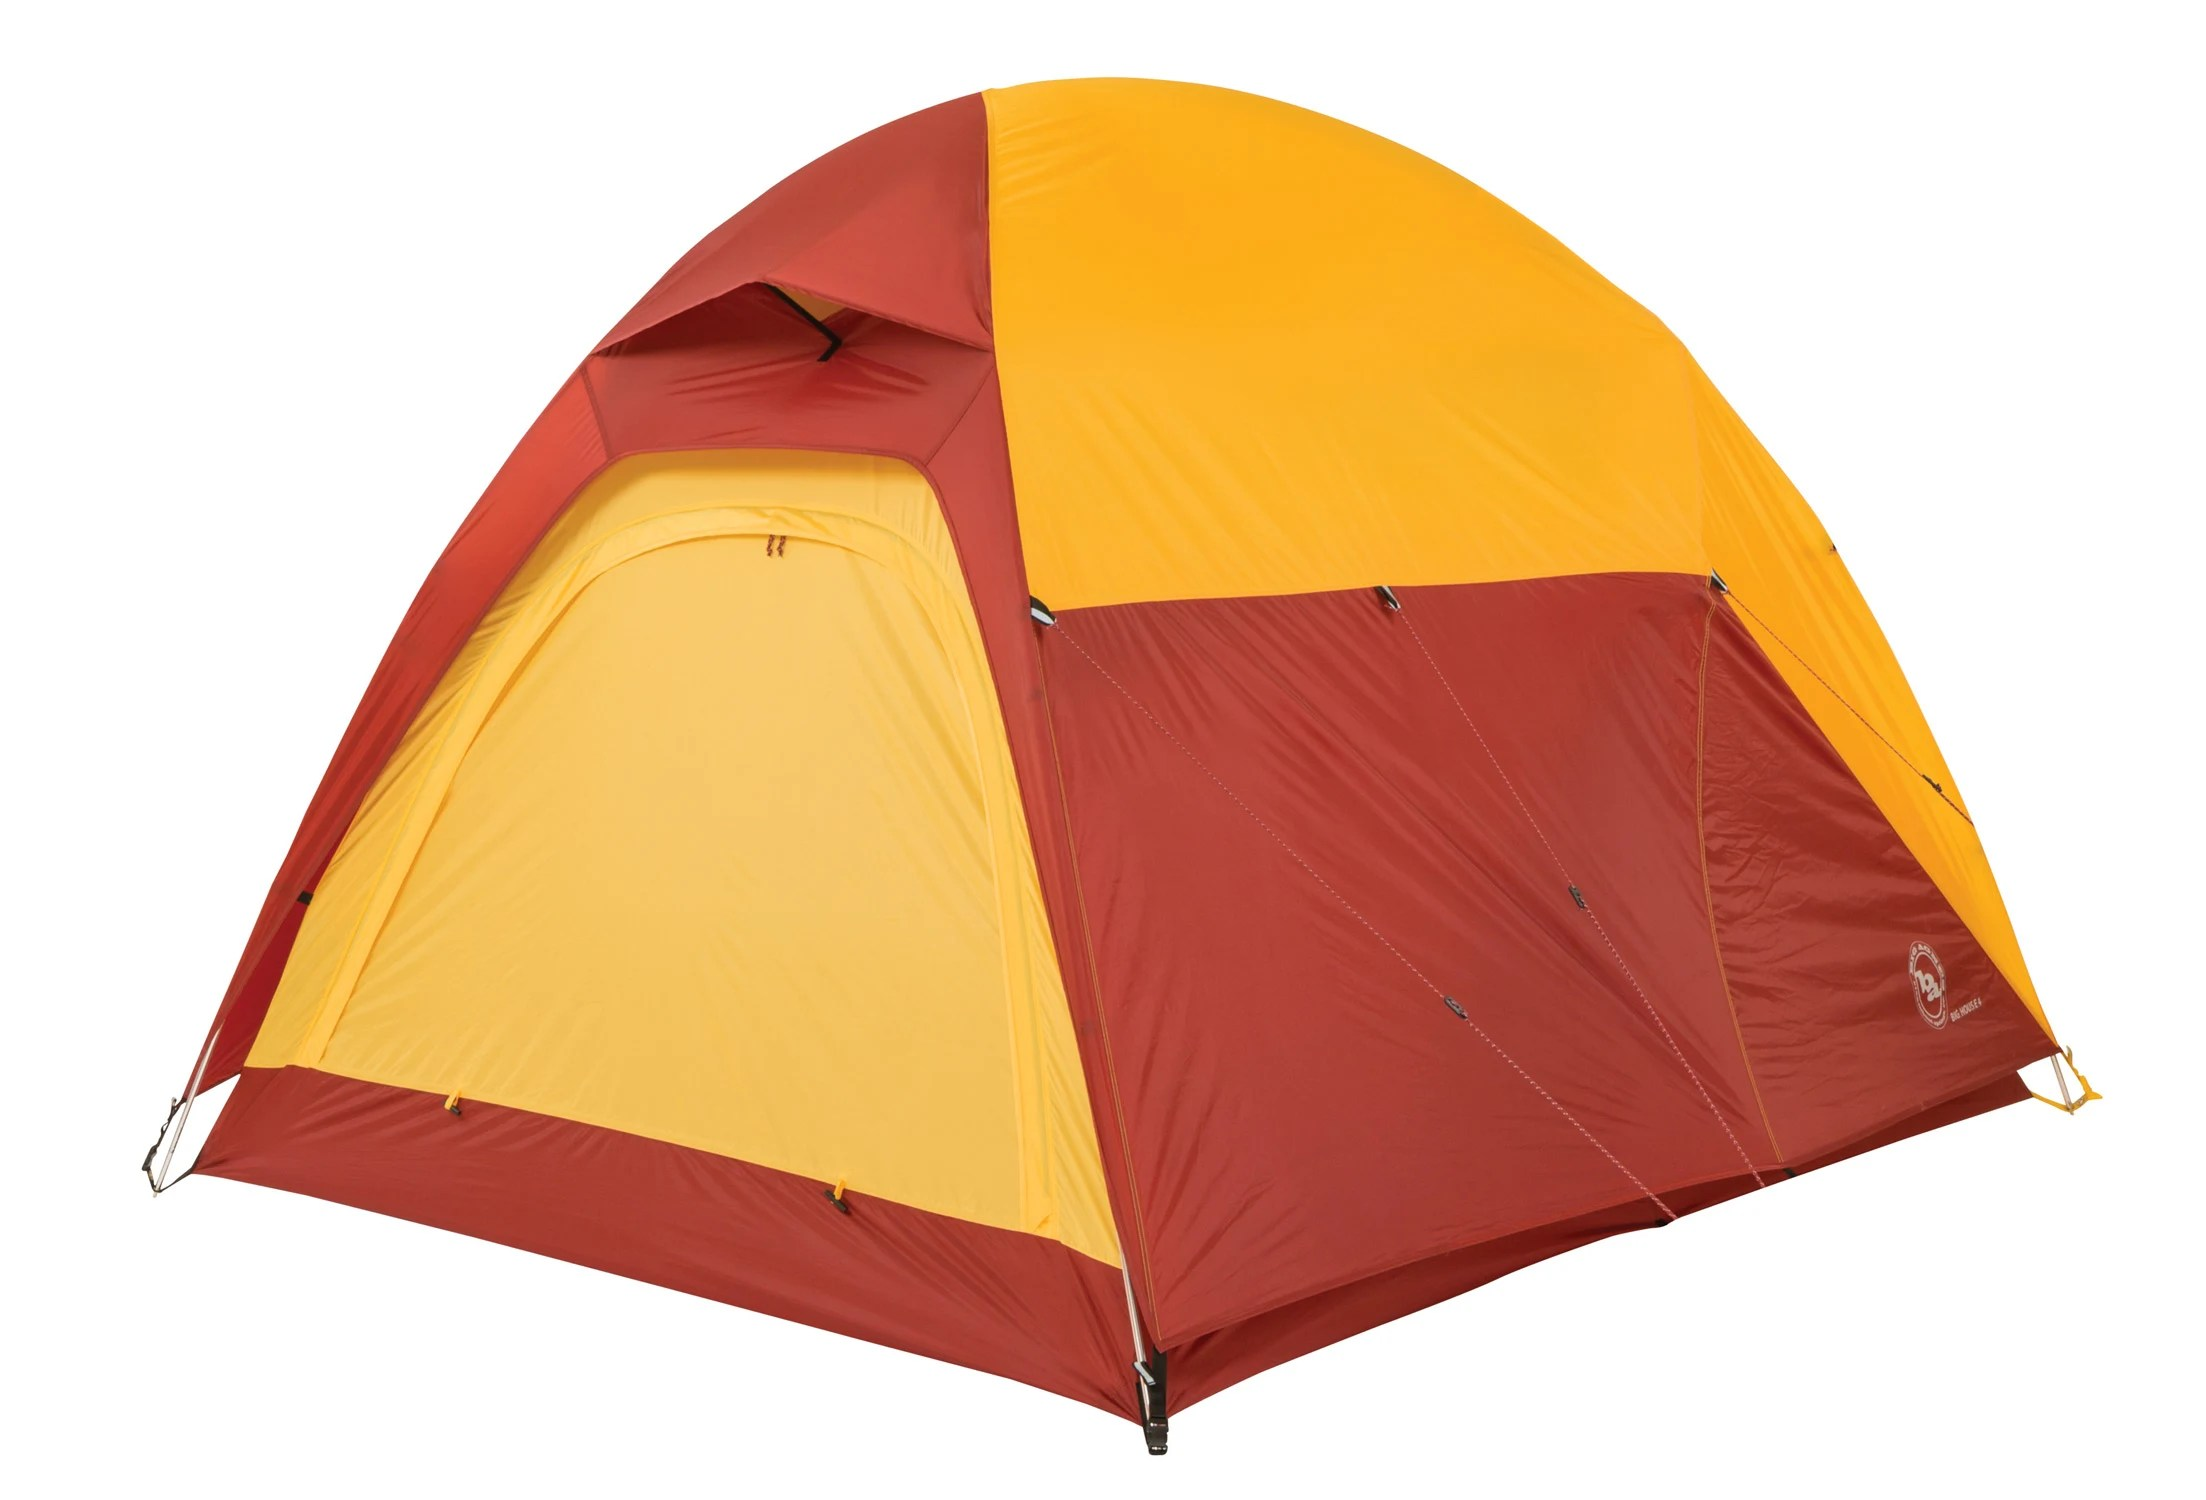 Tents Big 5 Best Tent 2017  sc 1 st  Best Tent 2018 : tents at big 5 - memphite.com